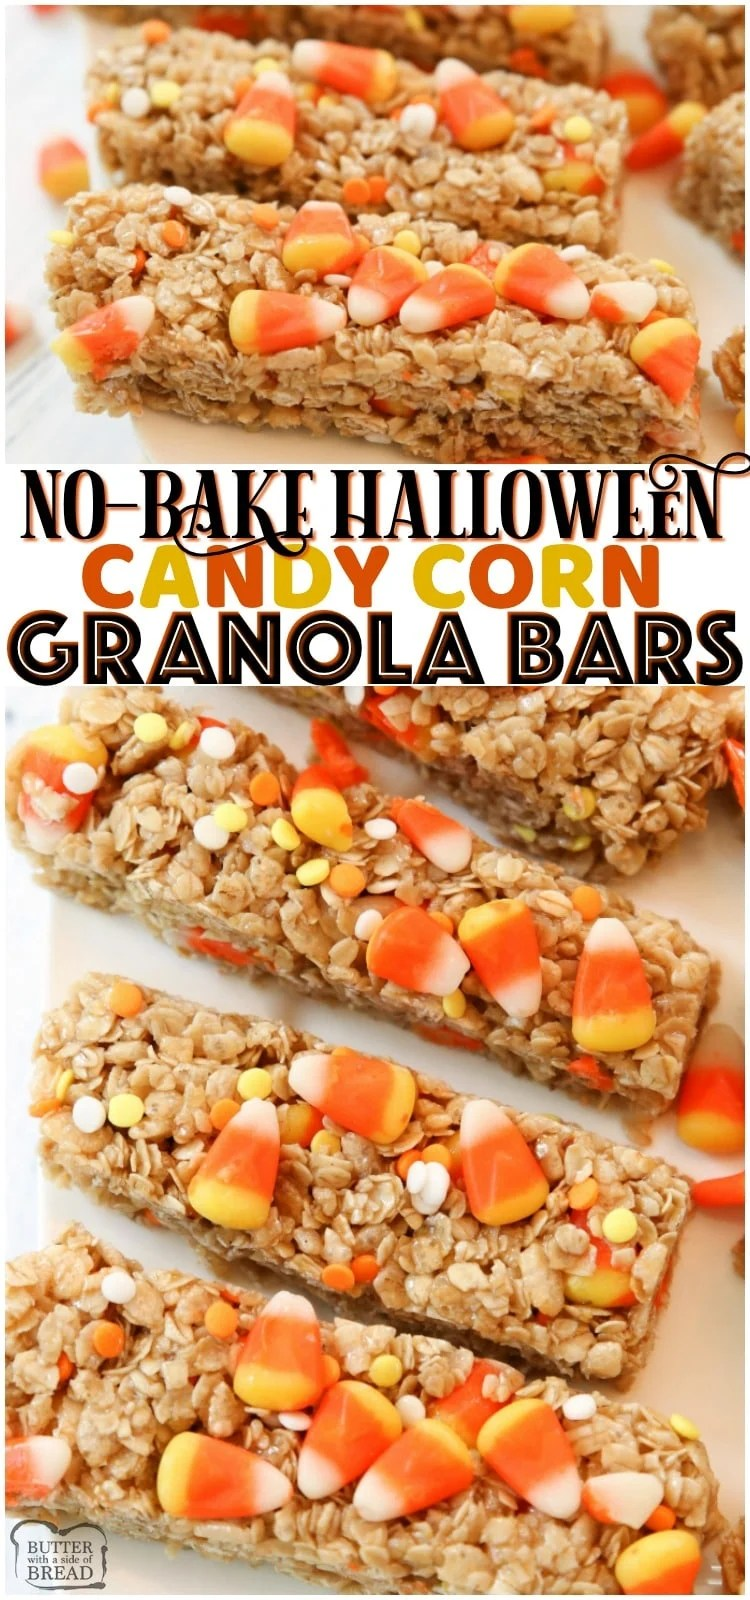 Quick & Easy Candy Corn Granola Bar recipe made in minutes. Perfect Halloween snack! Simple ingredients combined to make a tasty homemade granola bars. #Halloween #CandyCorn #granolaBars #HalloweenSnack #dessert #recipe from BUTTER WITH A SIDE OF BREAD